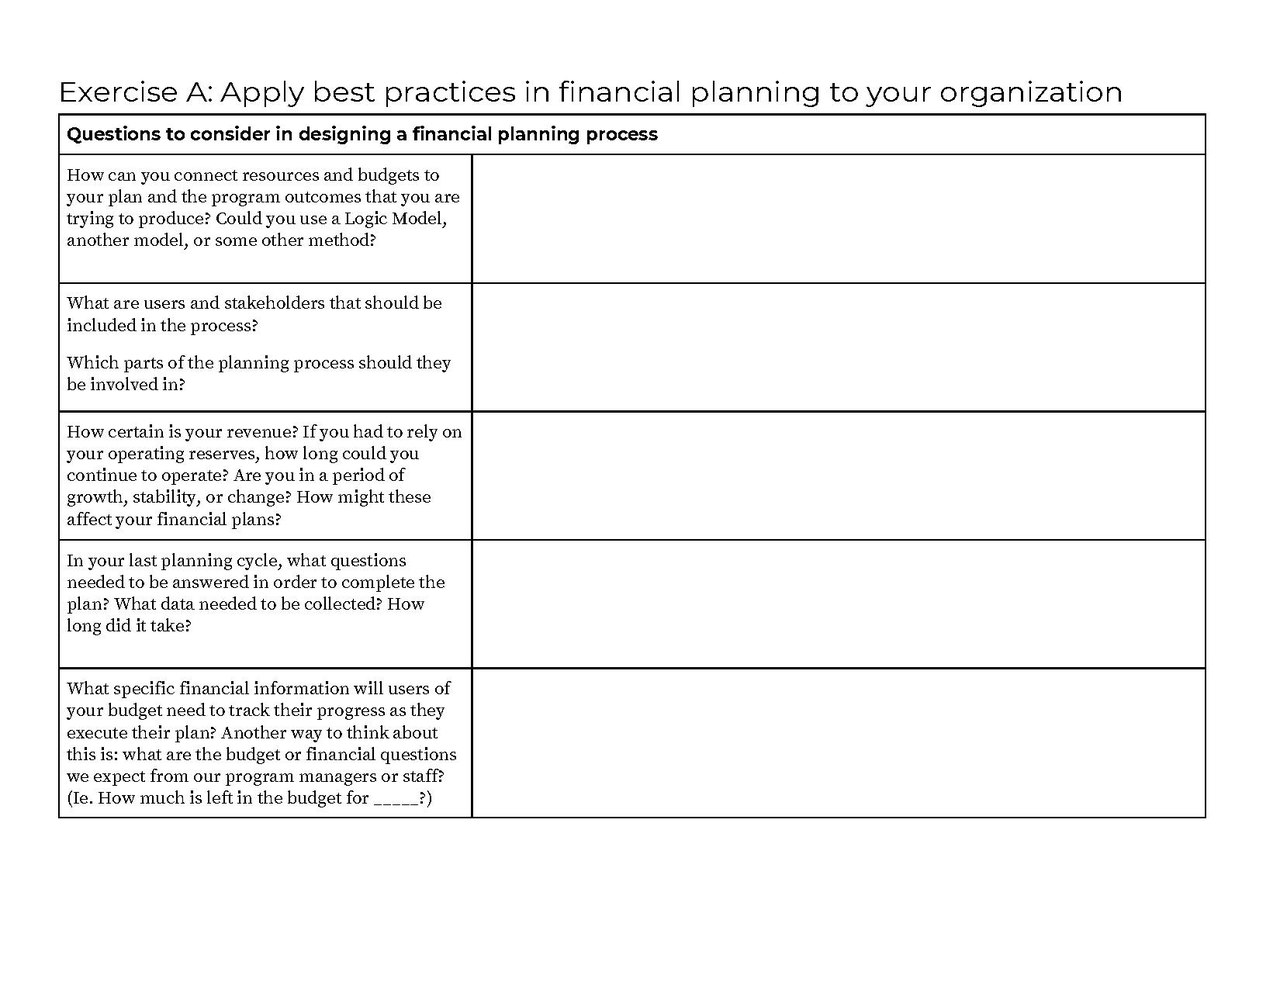 File Financial Planning For Your Organization Exercise